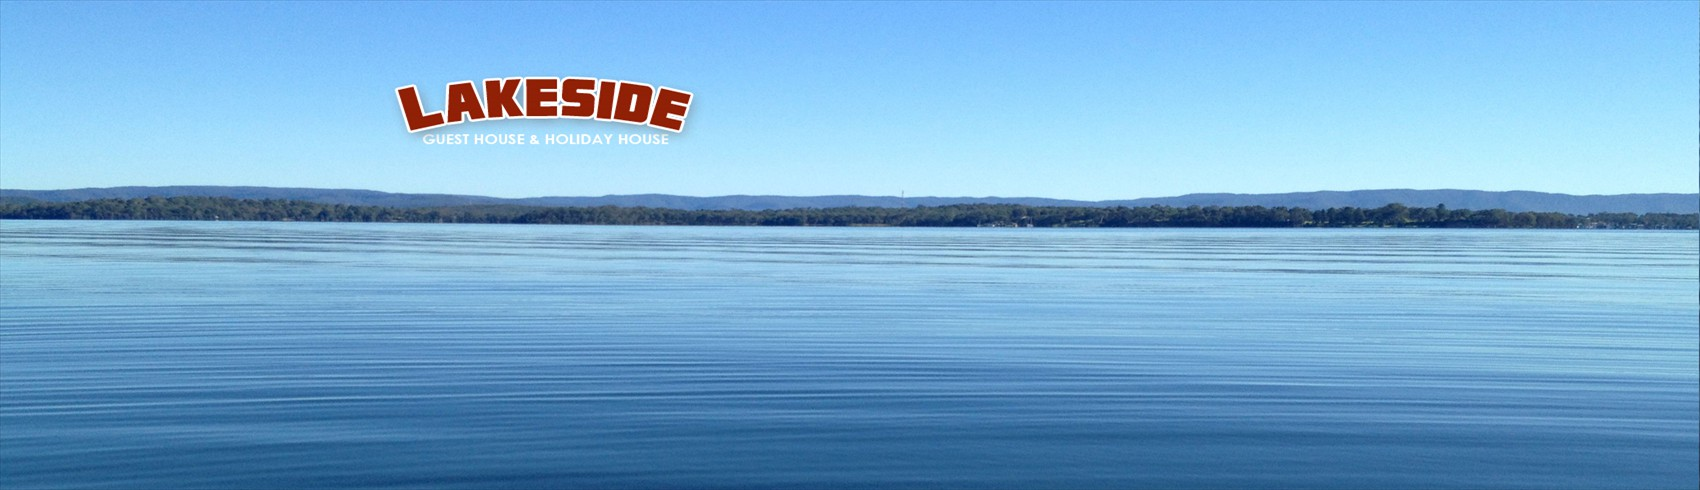 Book Your Next Holiday or Family Reunion at The Lakeside Guesthouse & Holiday House - Lake Macquarie